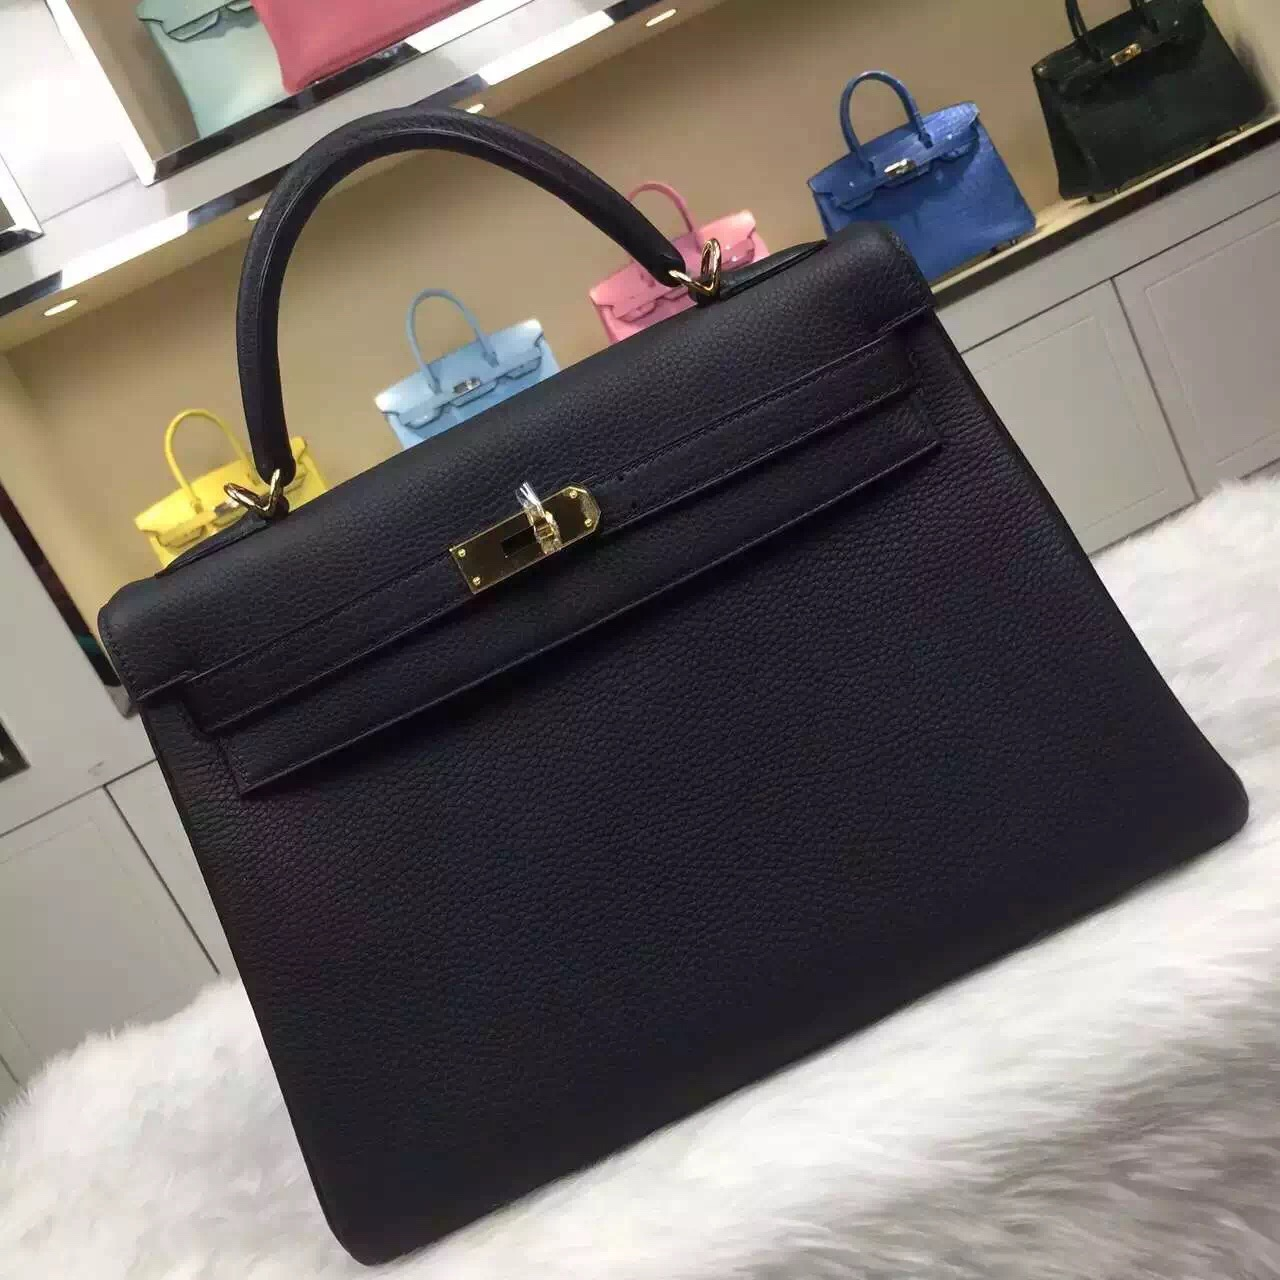 Fashion Women's Bag Hermes CK89 Black Togo Leather Kelly Bag32CM Retourne